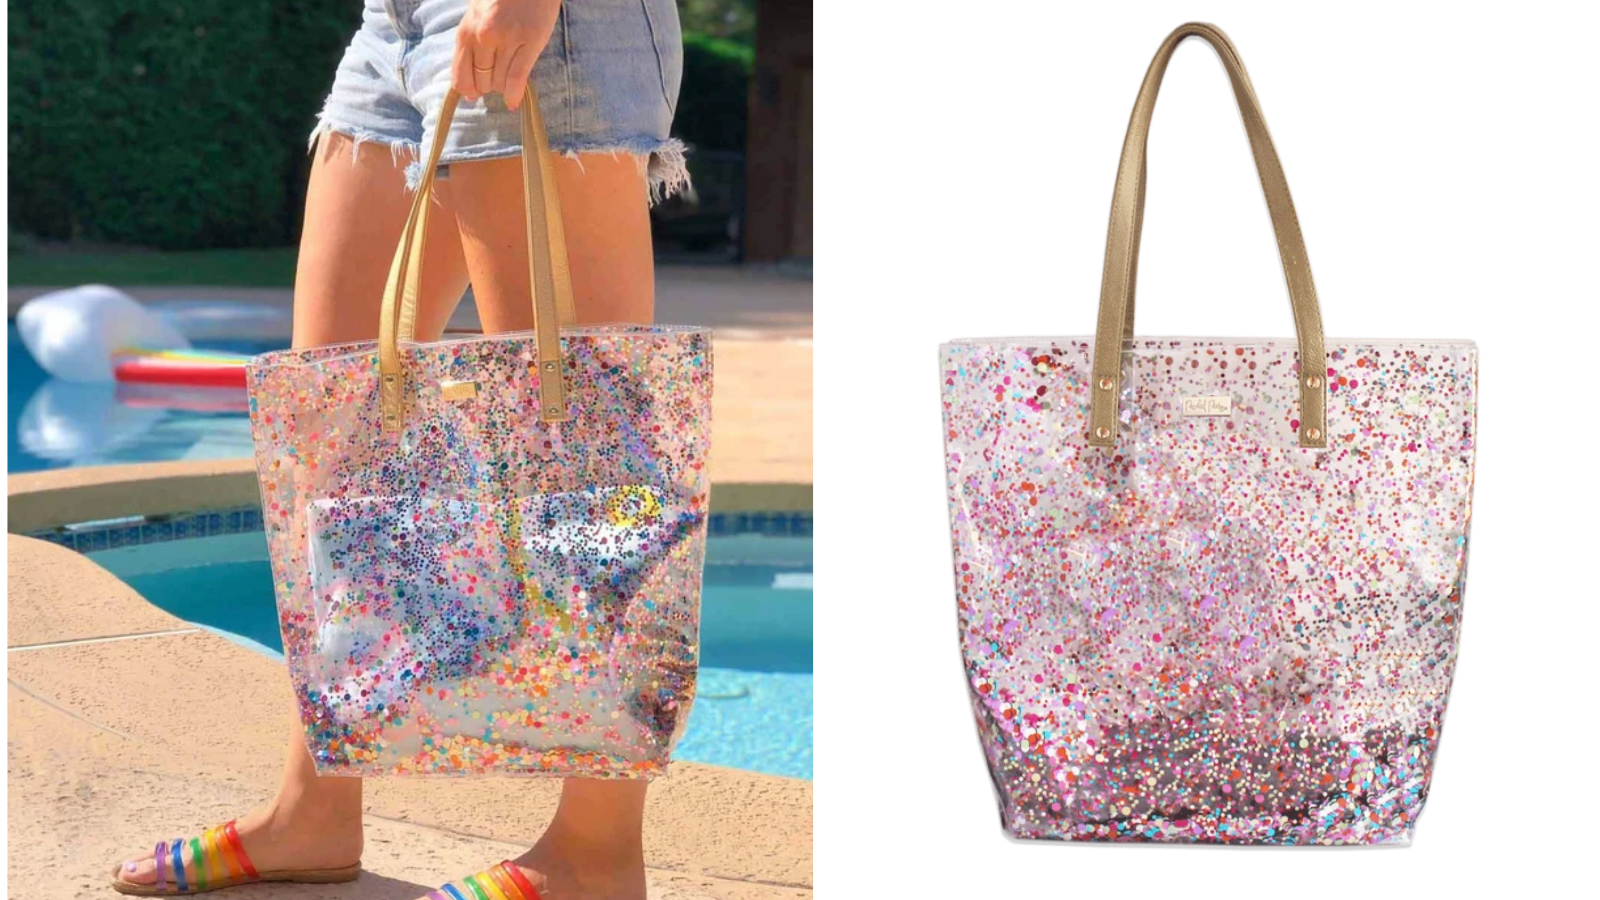 10 popular fall totes that are big enough to carry all of your things